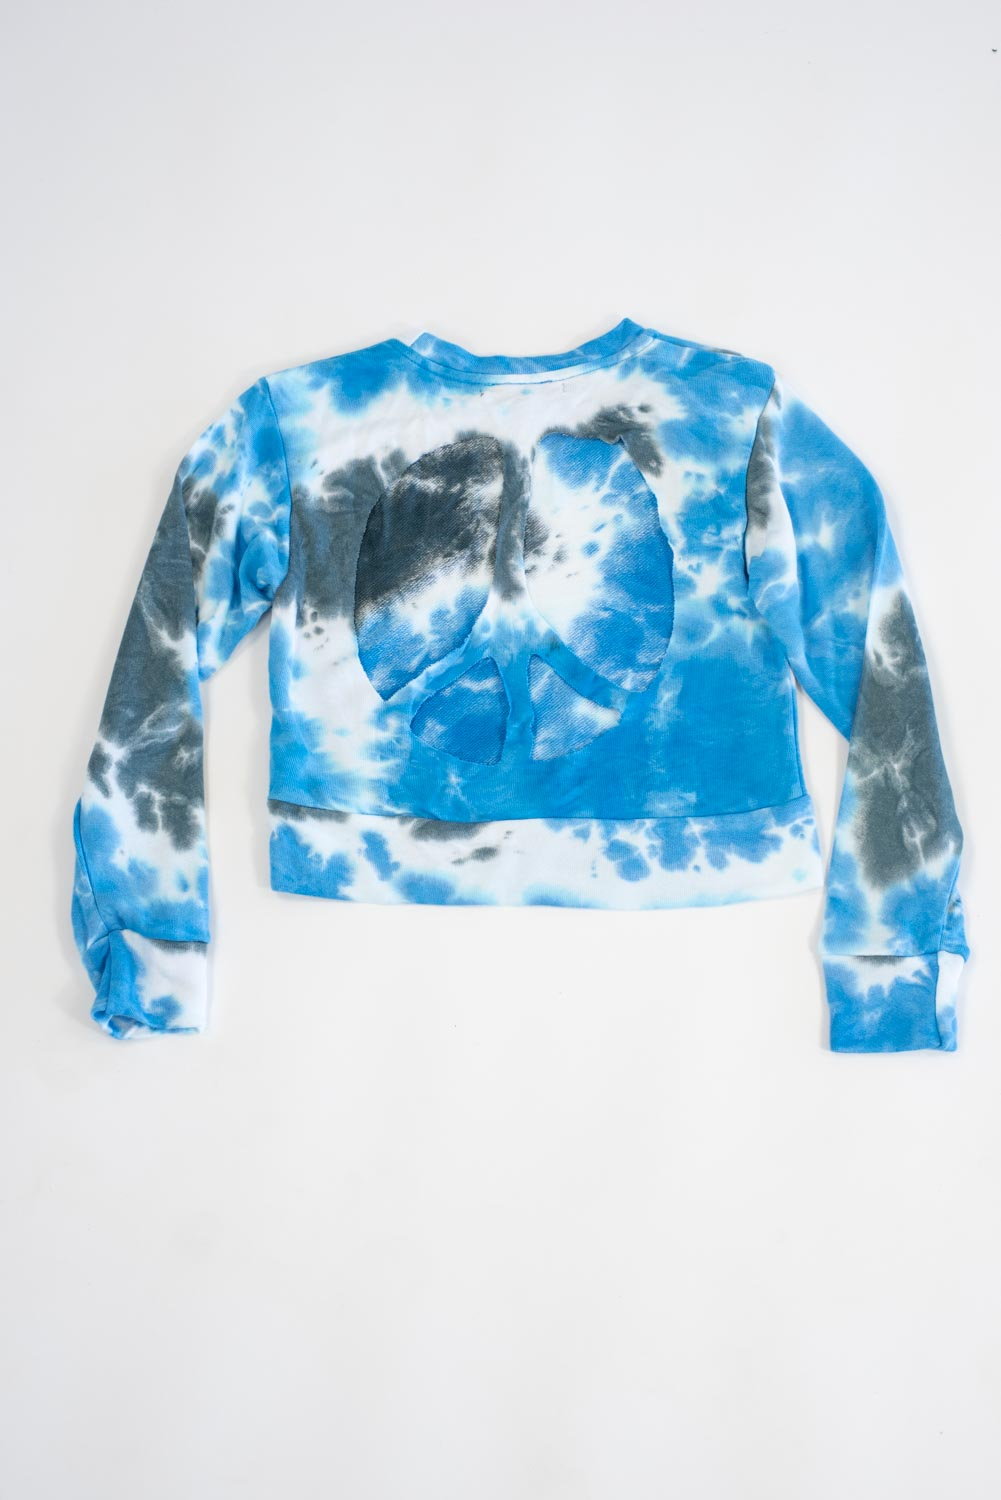 *Blue Tiedye Love Peace Cut-Out Sweatshirt*